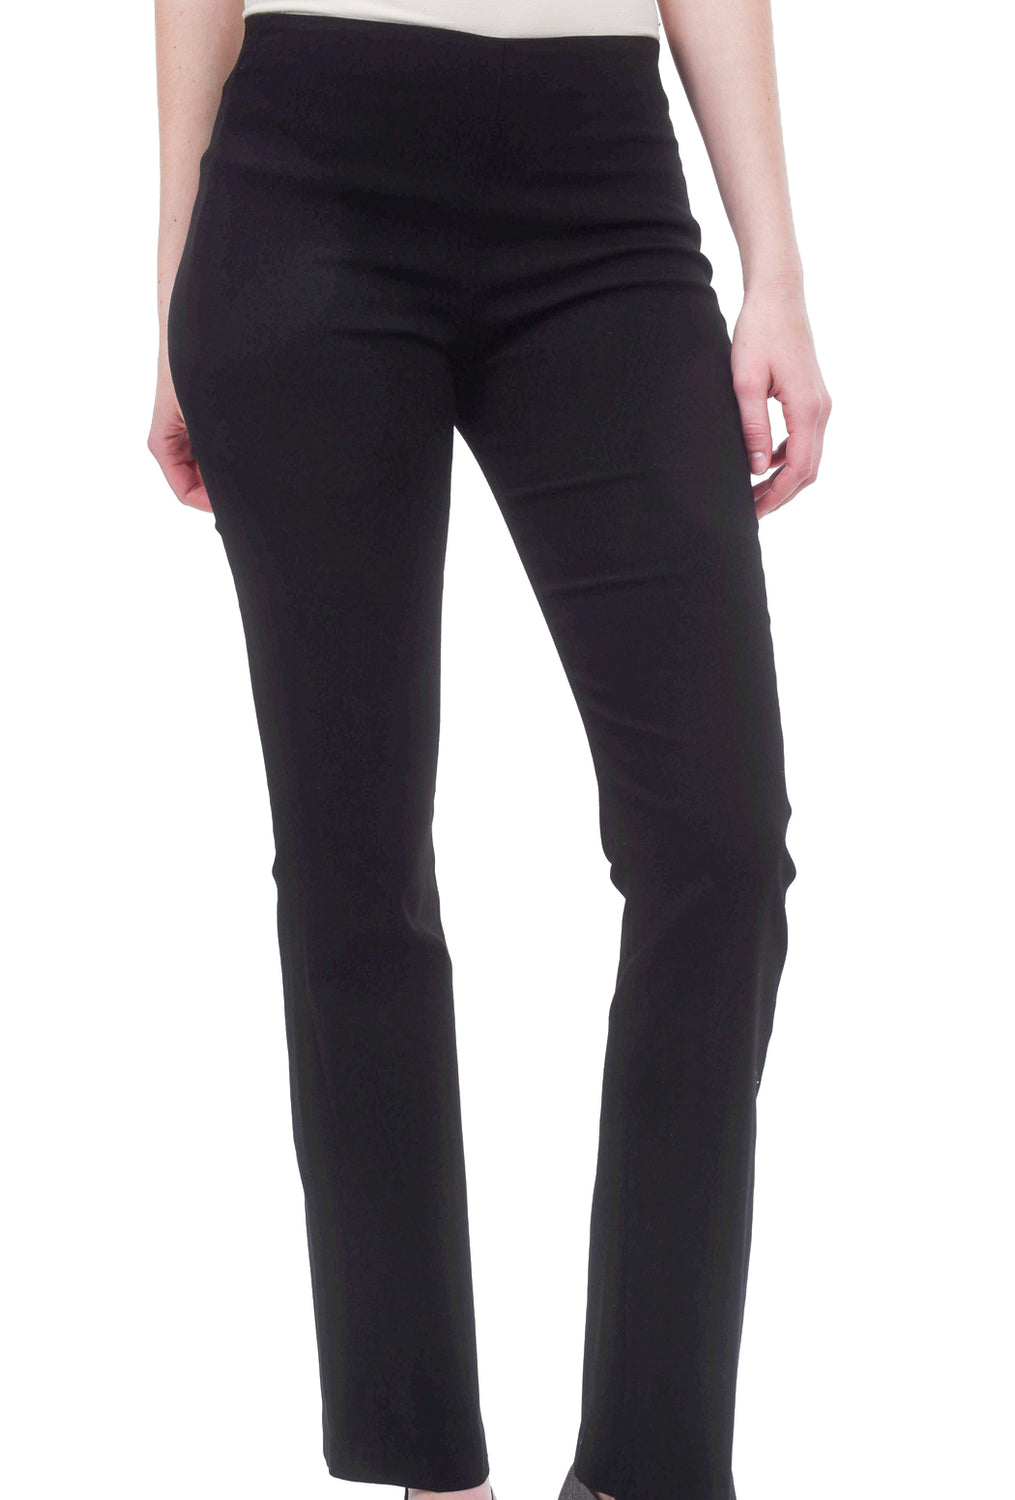 Equestrian Miley Pants, Black